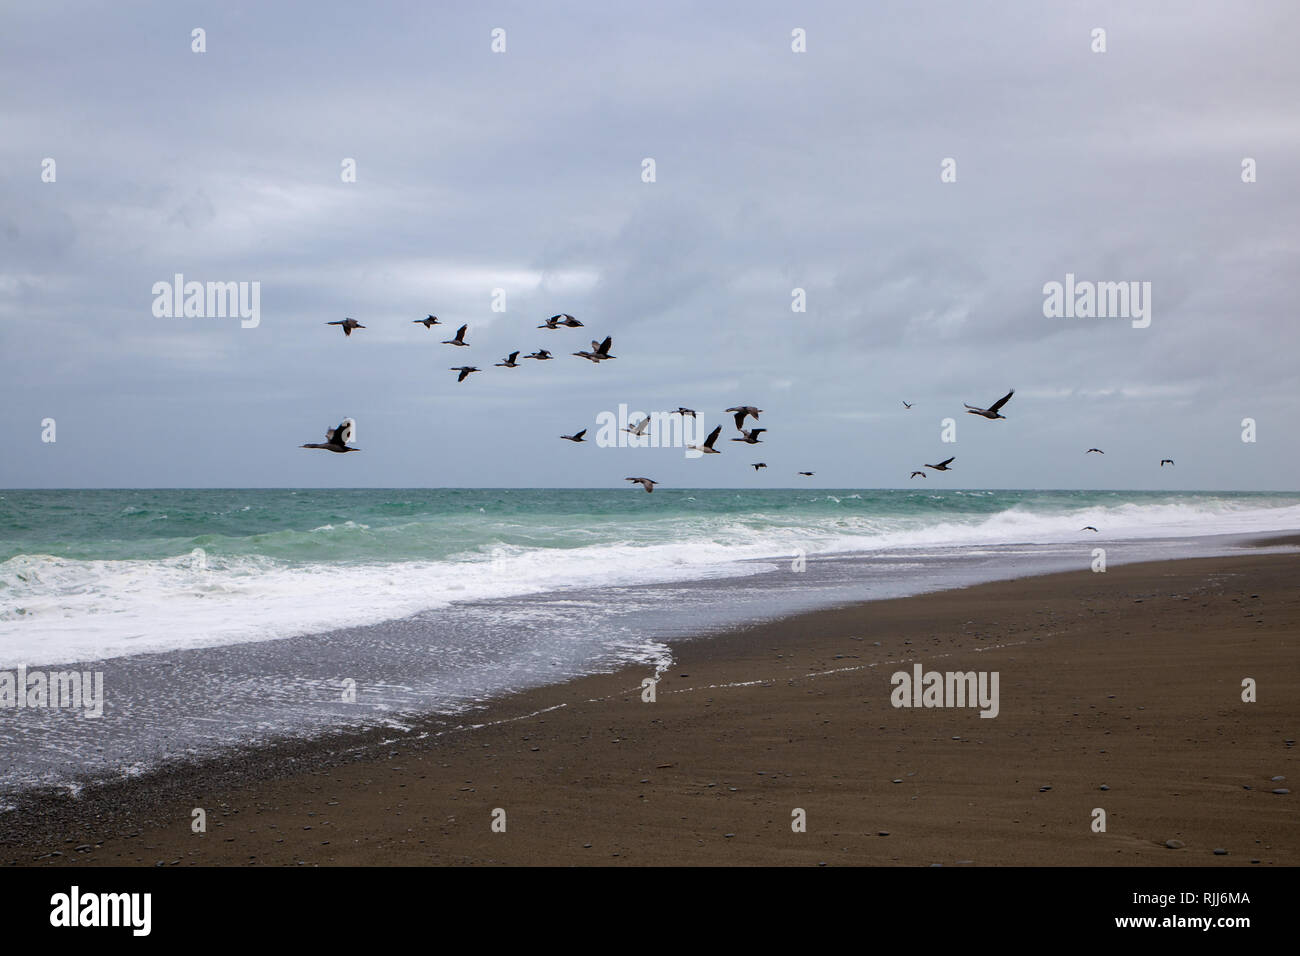 A group of spotted shags fly along the coastline in the evening at Birdlings Flat, New Zealand - Stock Image